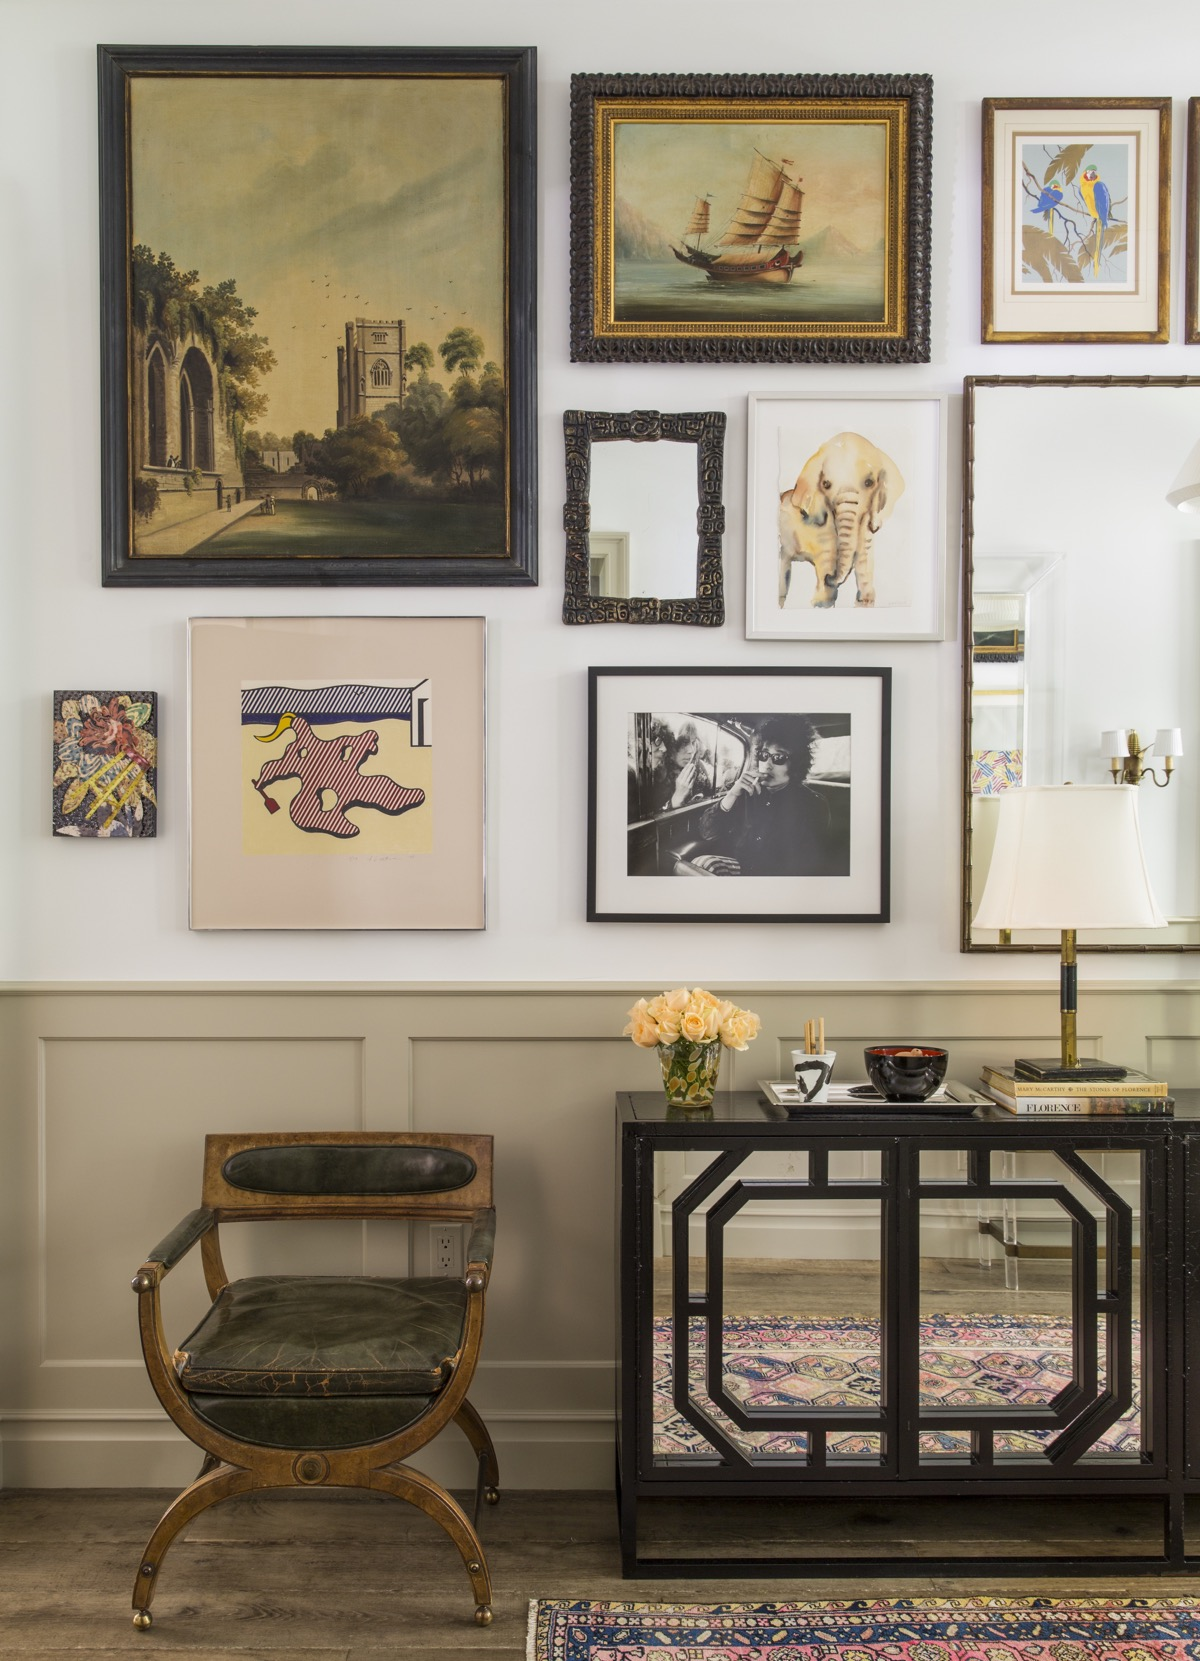 Entry hall with wood and leather chair, dark wood wall table with mirrored front, lamps, flowers and tray in front of light wall with various mirrors, paintings and photos.